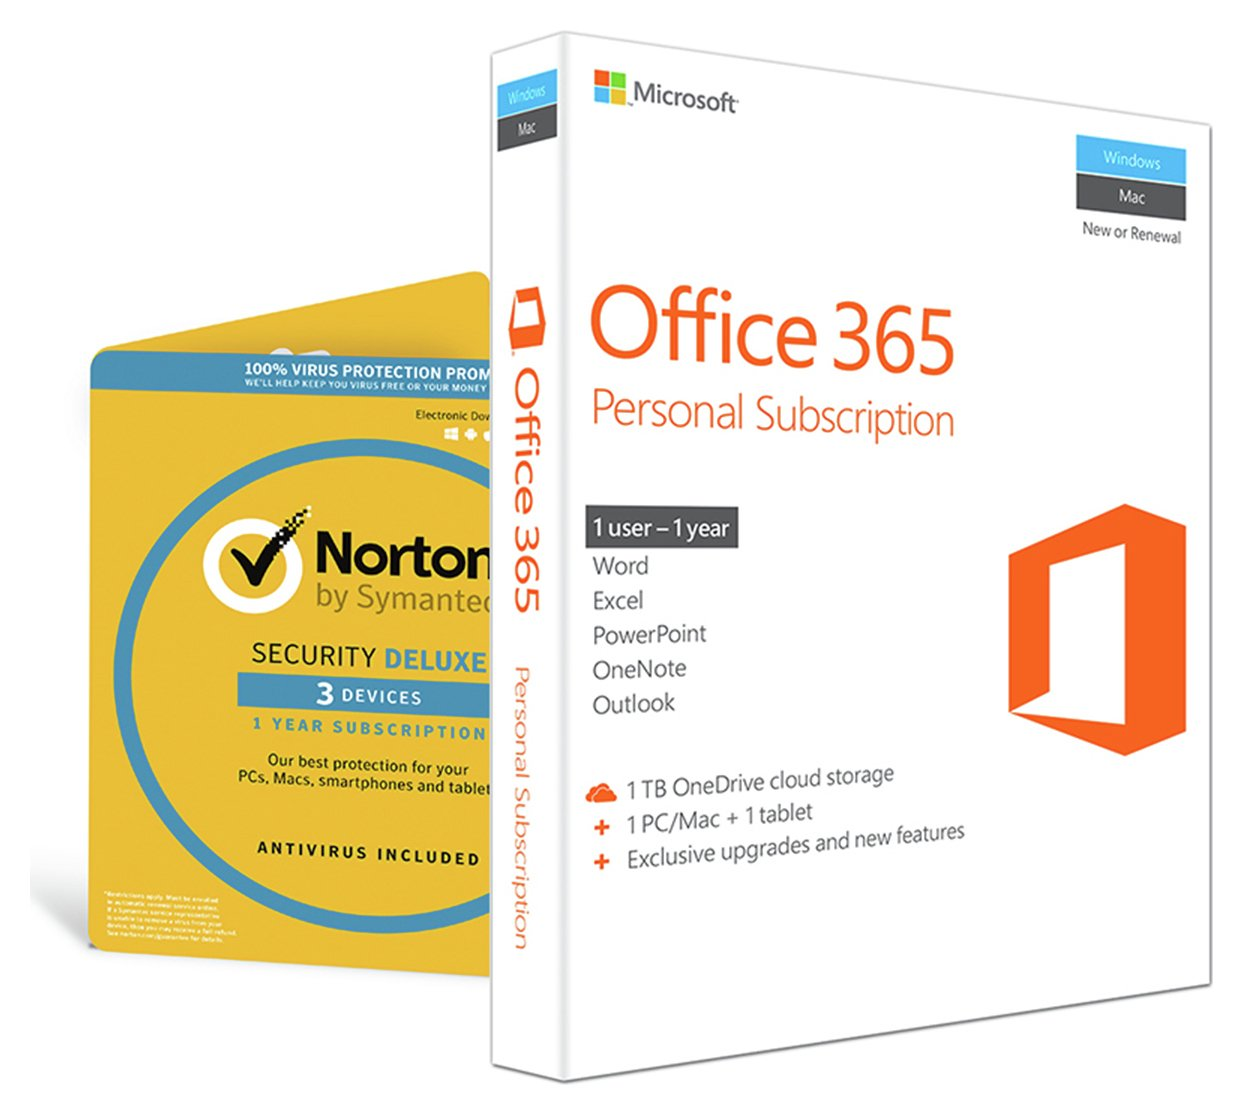 Image of Microsoft - Office 365 Personal and Norton - Internet Security